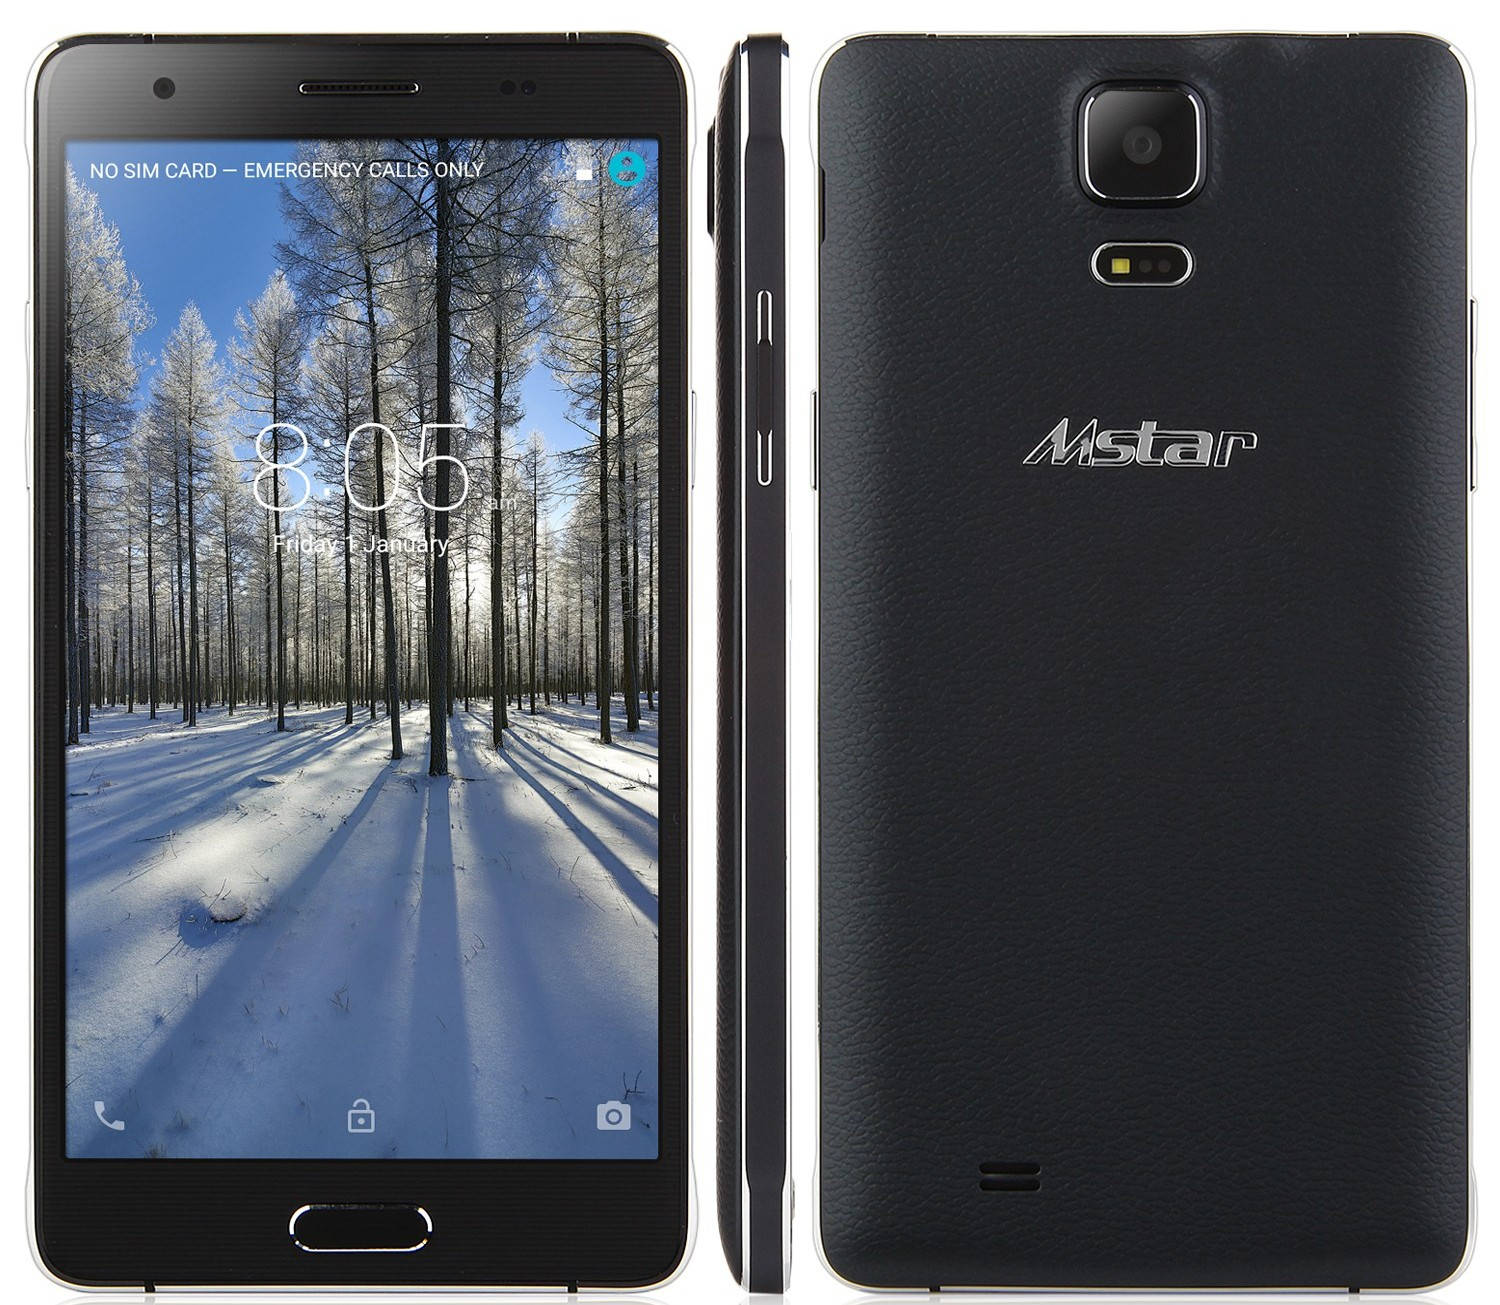 How to root Mstar M1 in less than an hour